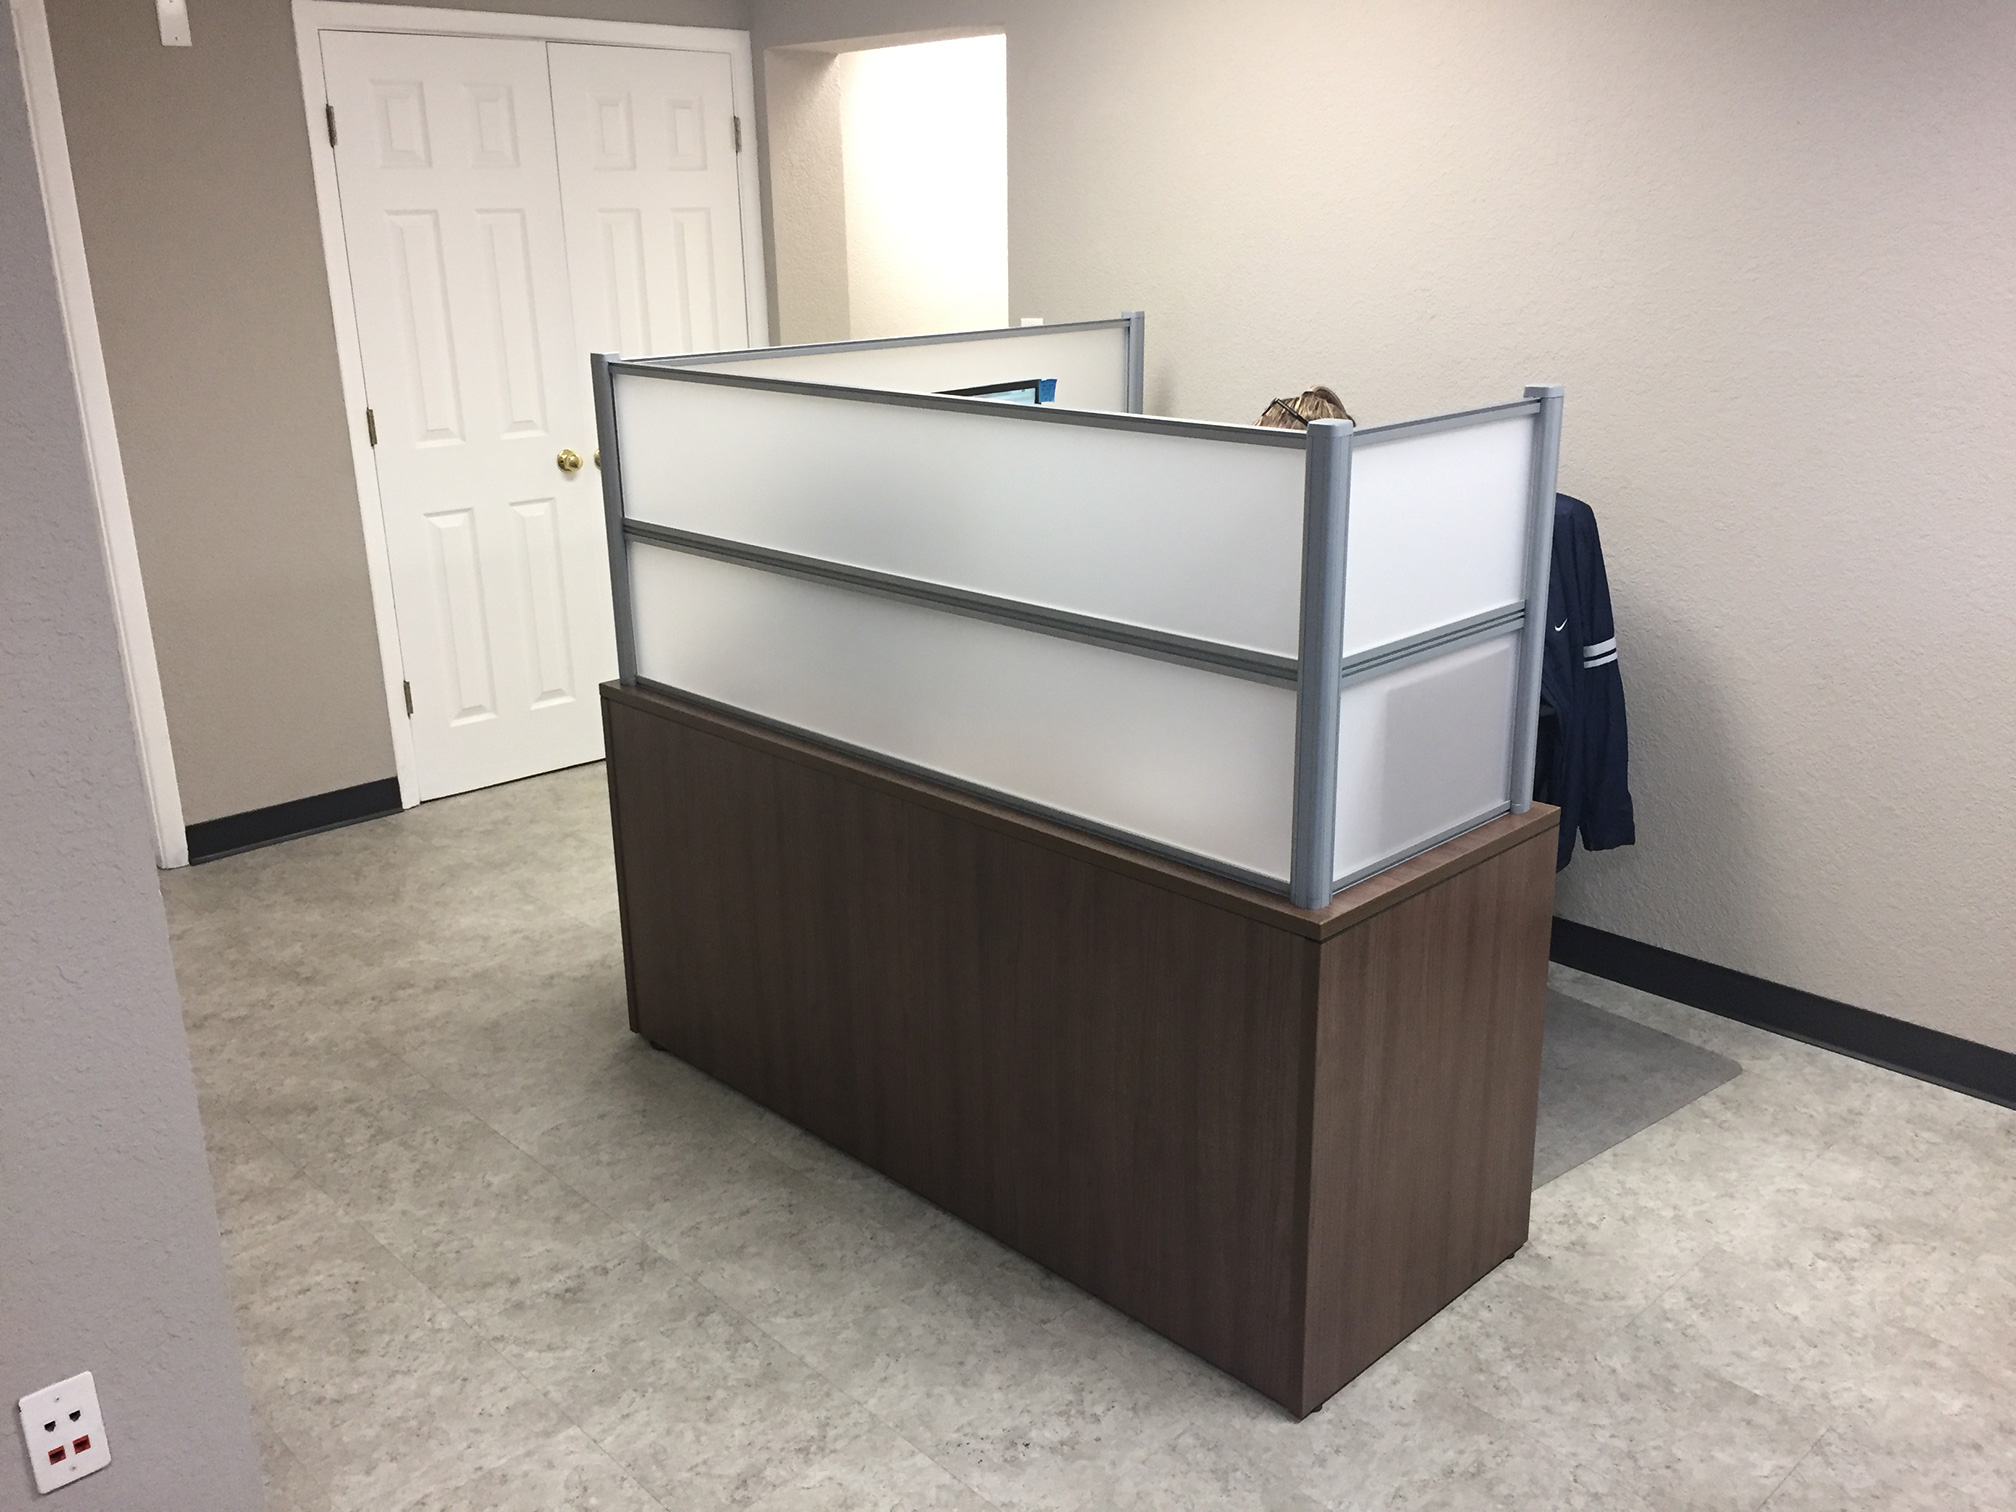 reception-desks-manasota-office-supplies-llc.jpg